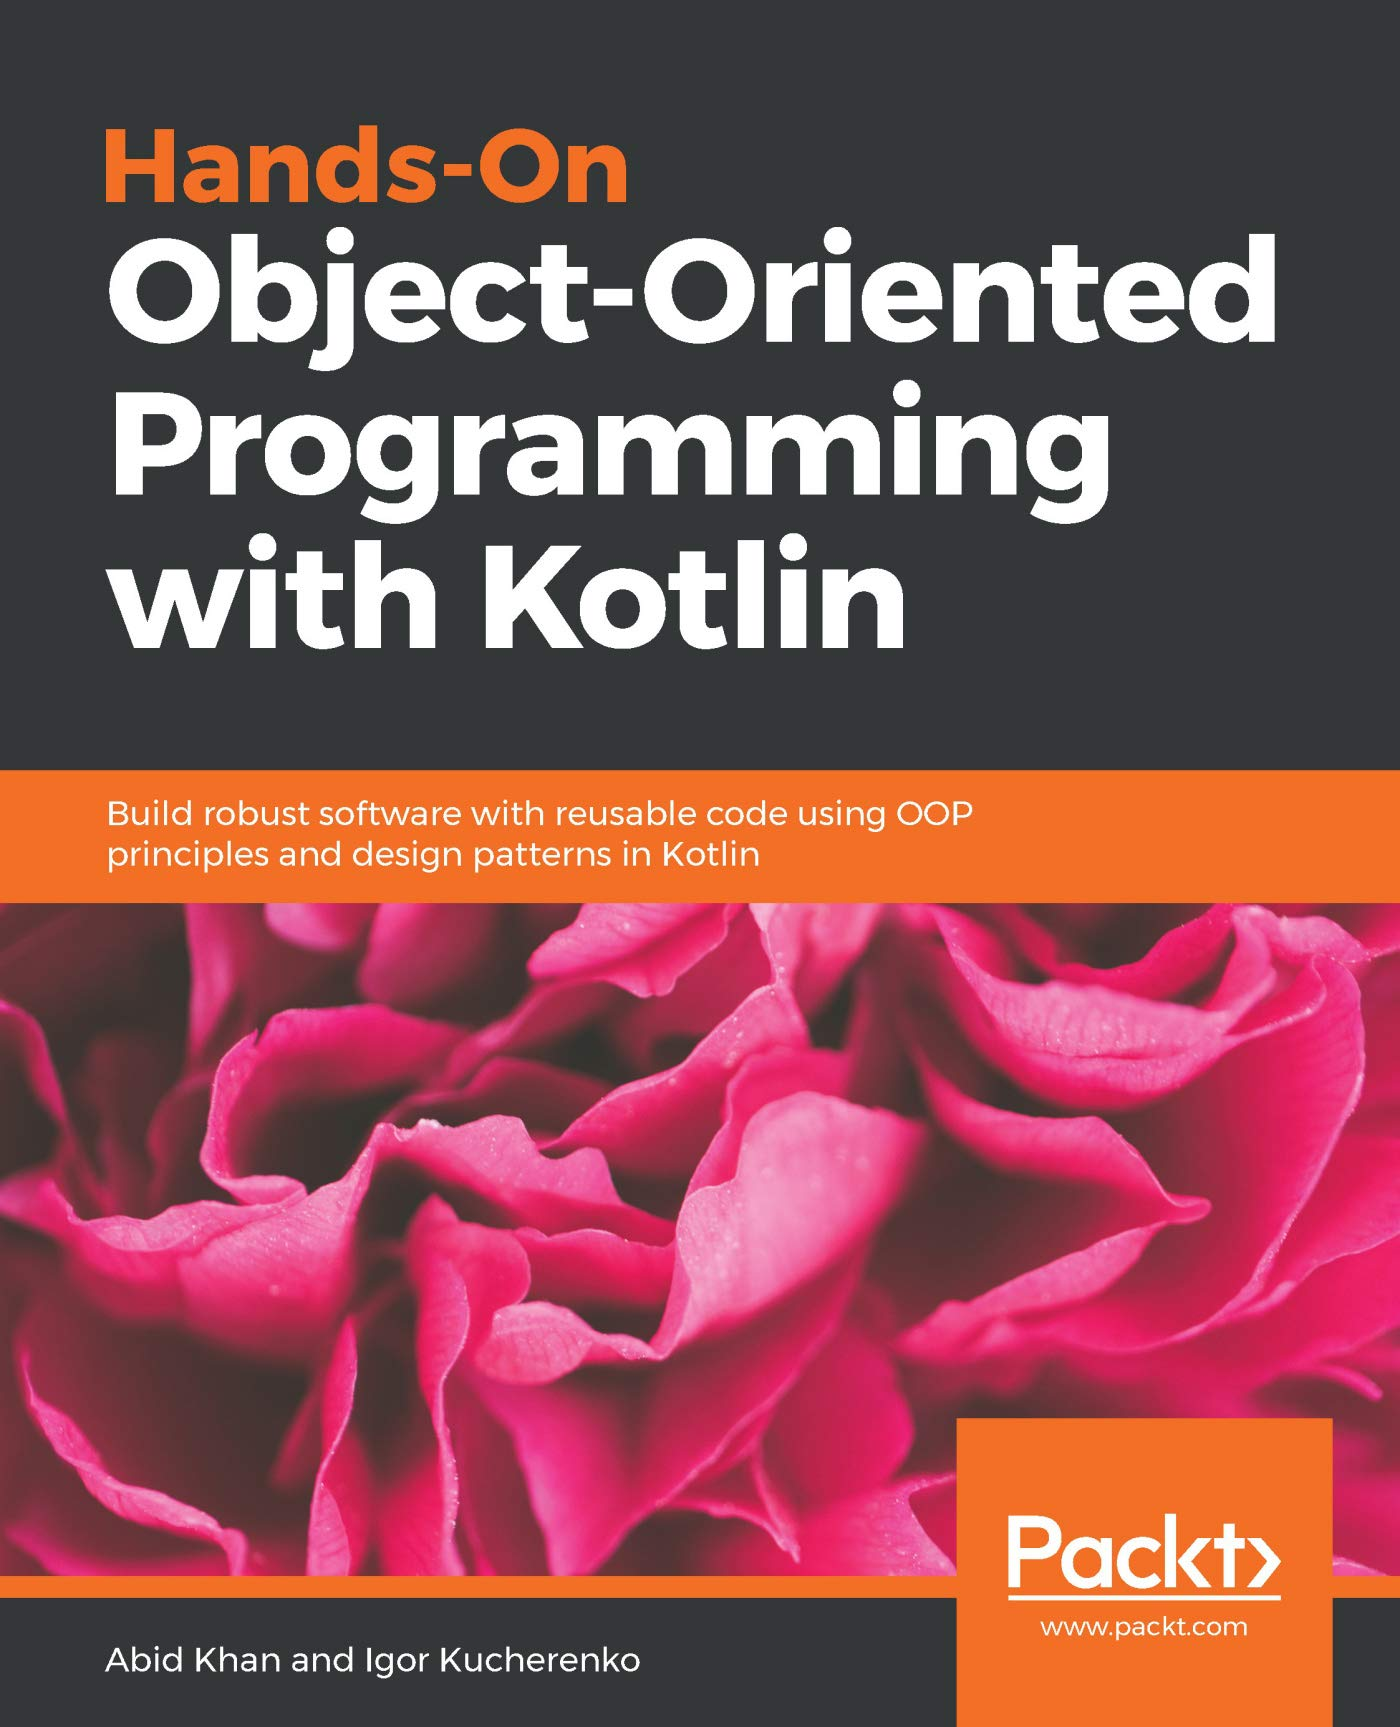 Amazon Com Hands On Object Oriented Programming With Kotlin Build Robust Software With Reusable Code Using Oop Principles And Design Patterns In Kotlin Ebook Khan Abid Kucherenko Igor Kindle Store